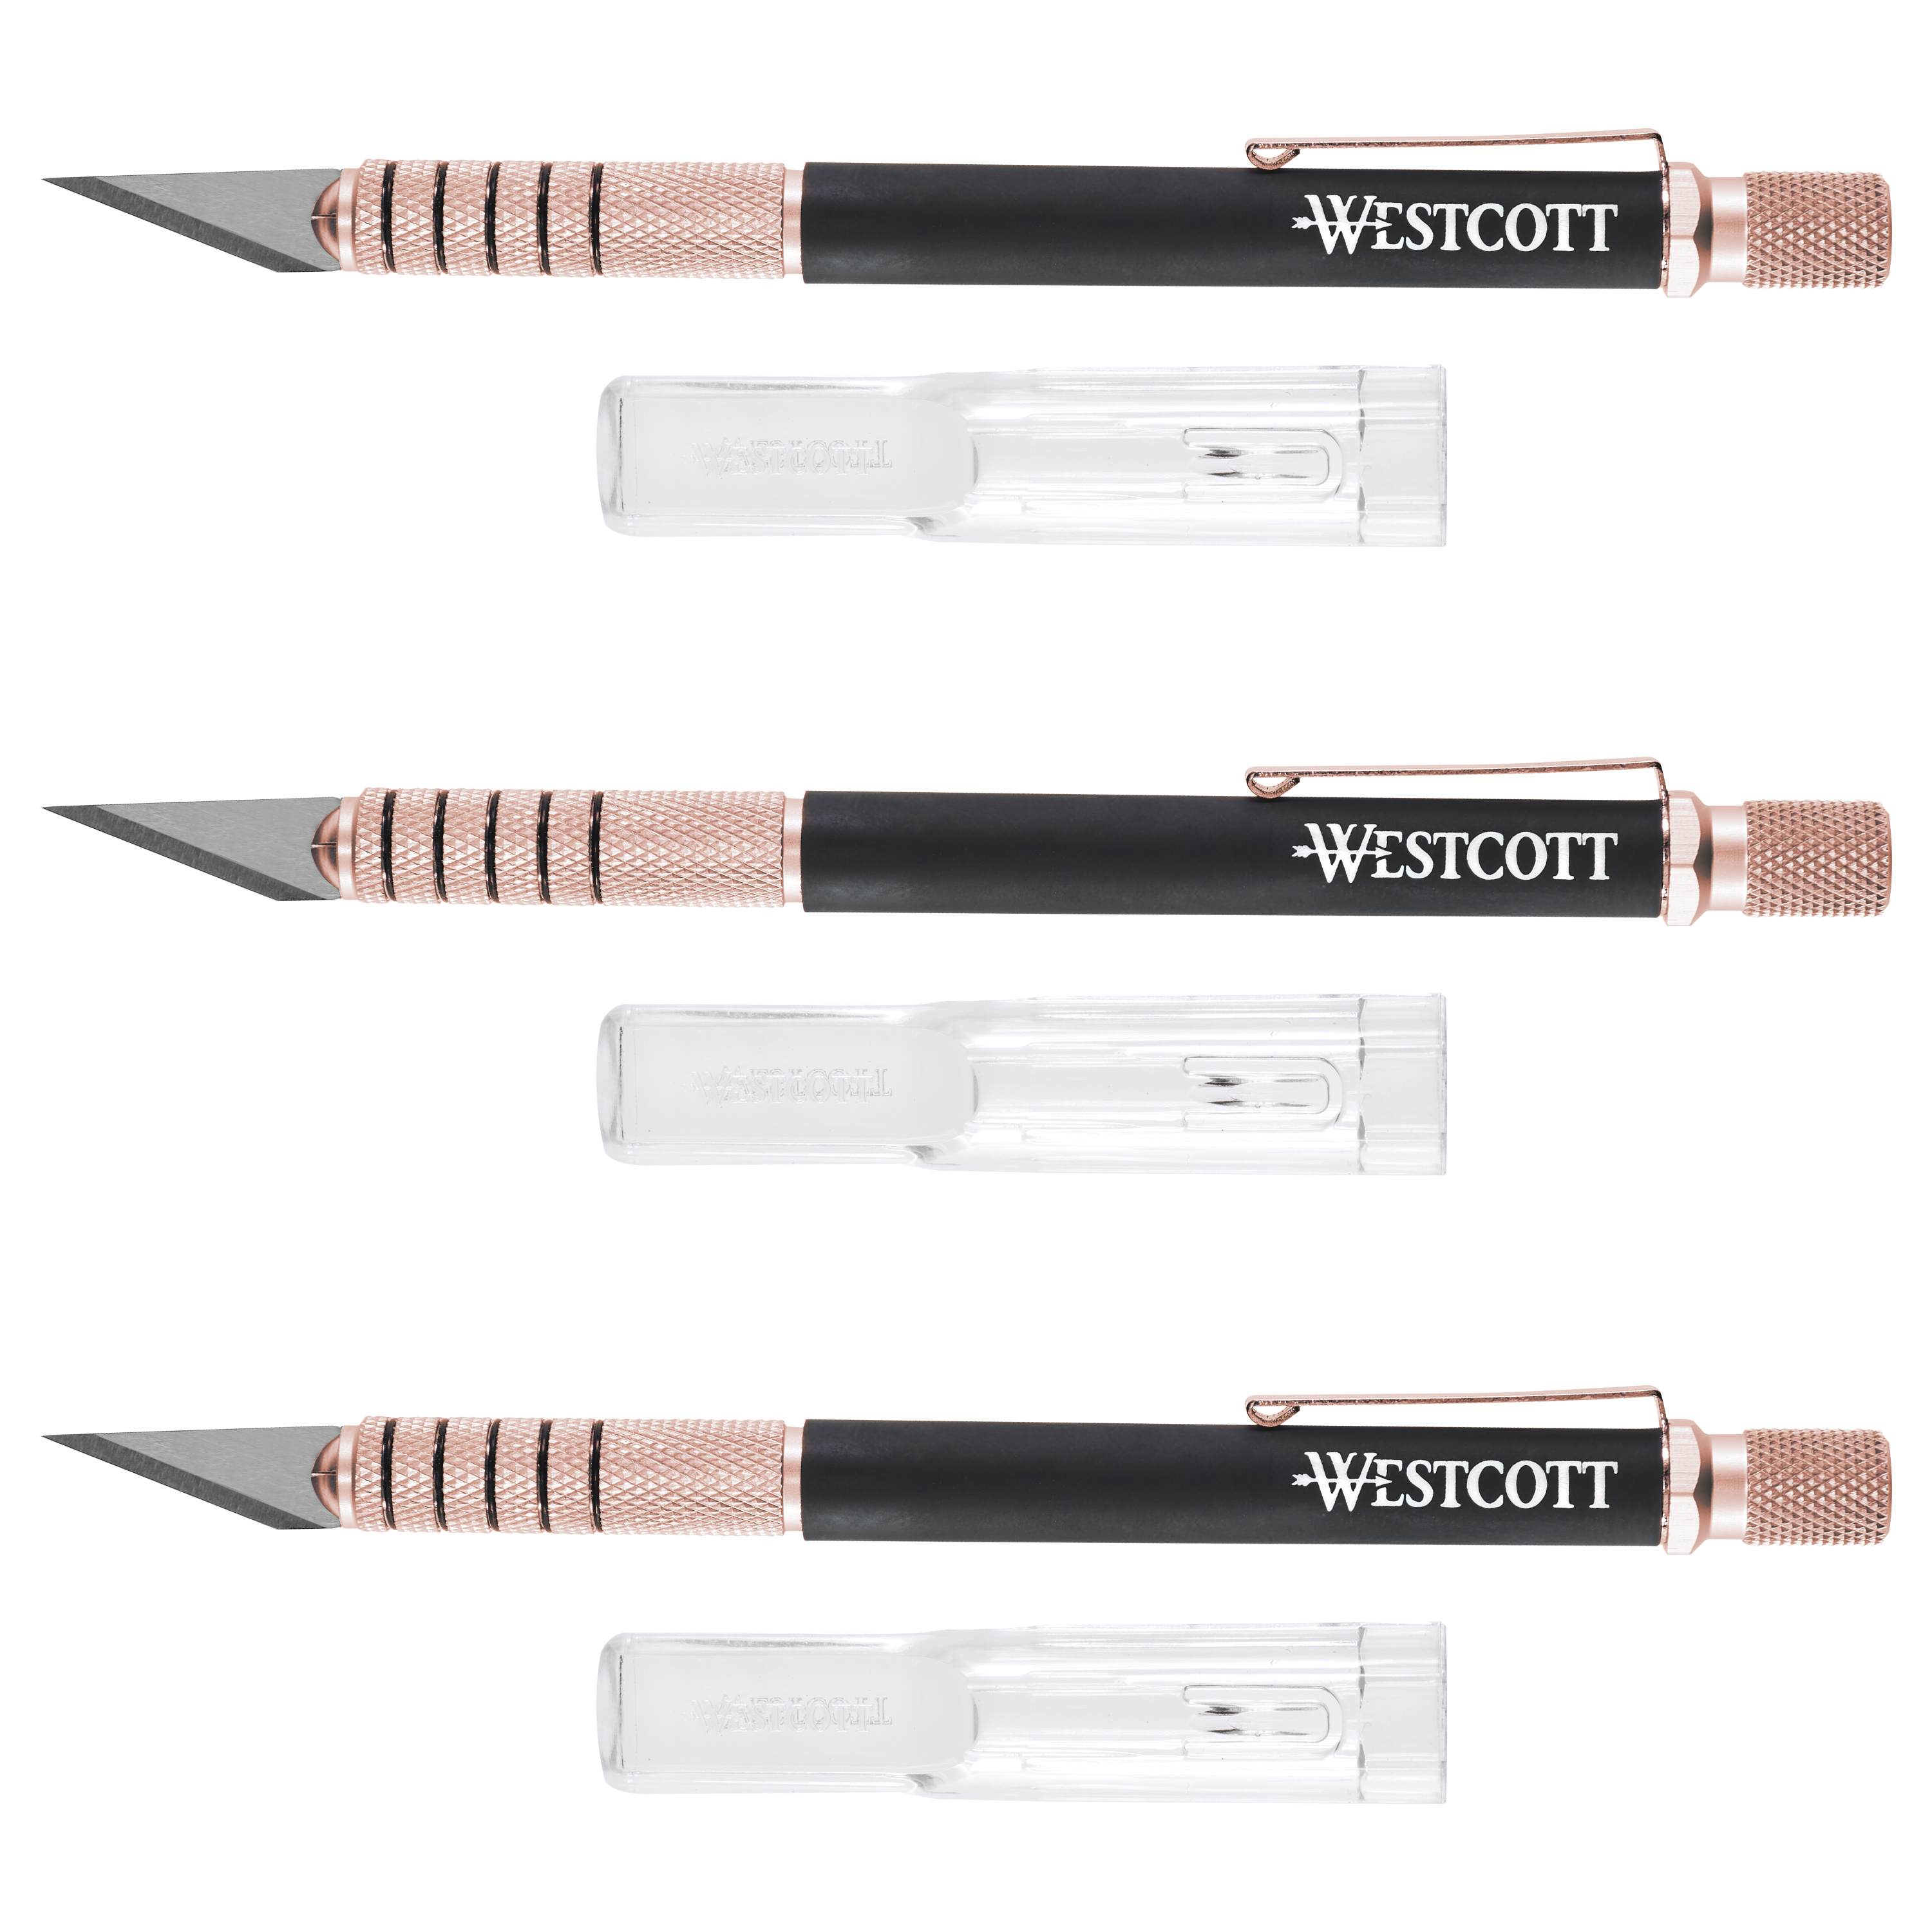 Westcott Carbotitanium Hobby Knife with Comfort Grip Handle, 3 Pack Rose Gold by ACME UNITED CORPORATION